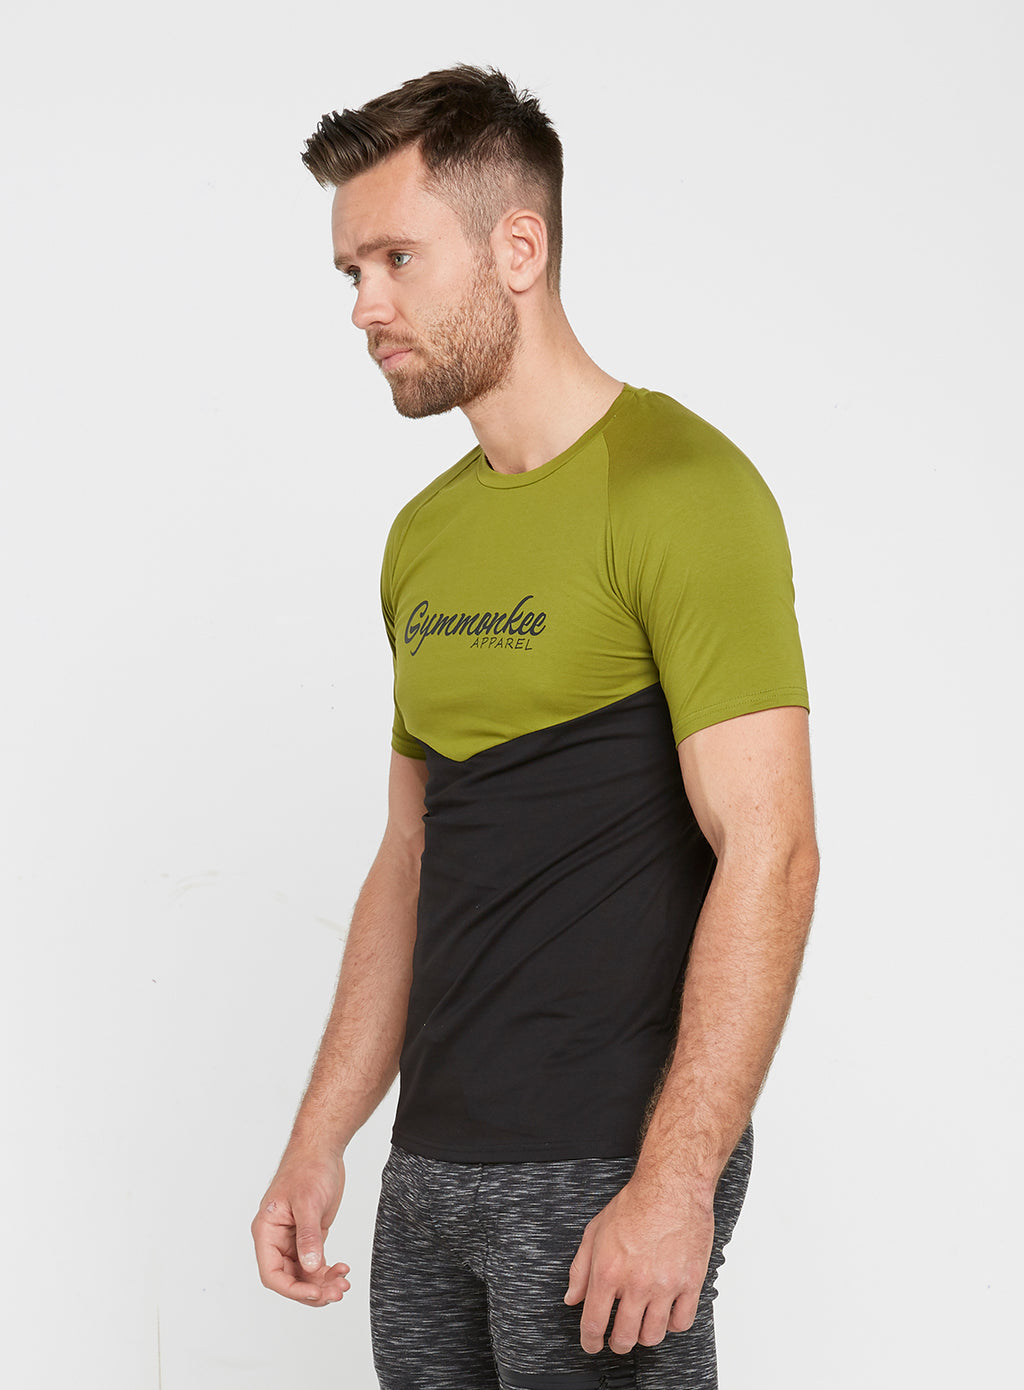 Gym Monkee - Black and Khaki Tee LEFT